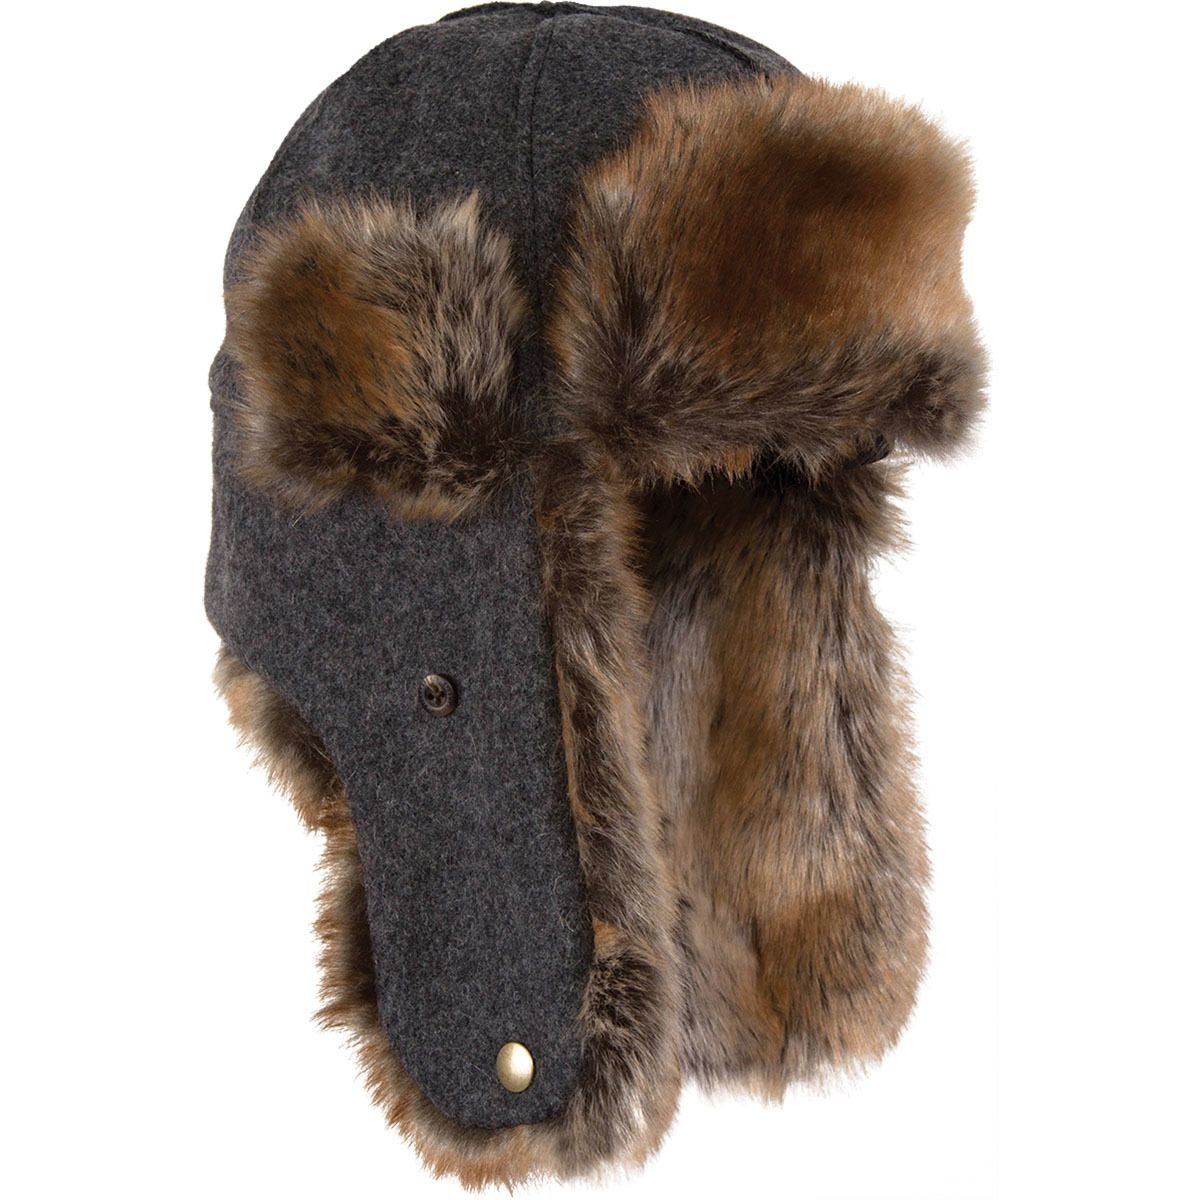 Stormy Kromer The Northwoods Trapper Hat, Color: Charcoal, Size: Sm (51210-00004 by Stormy Kromer